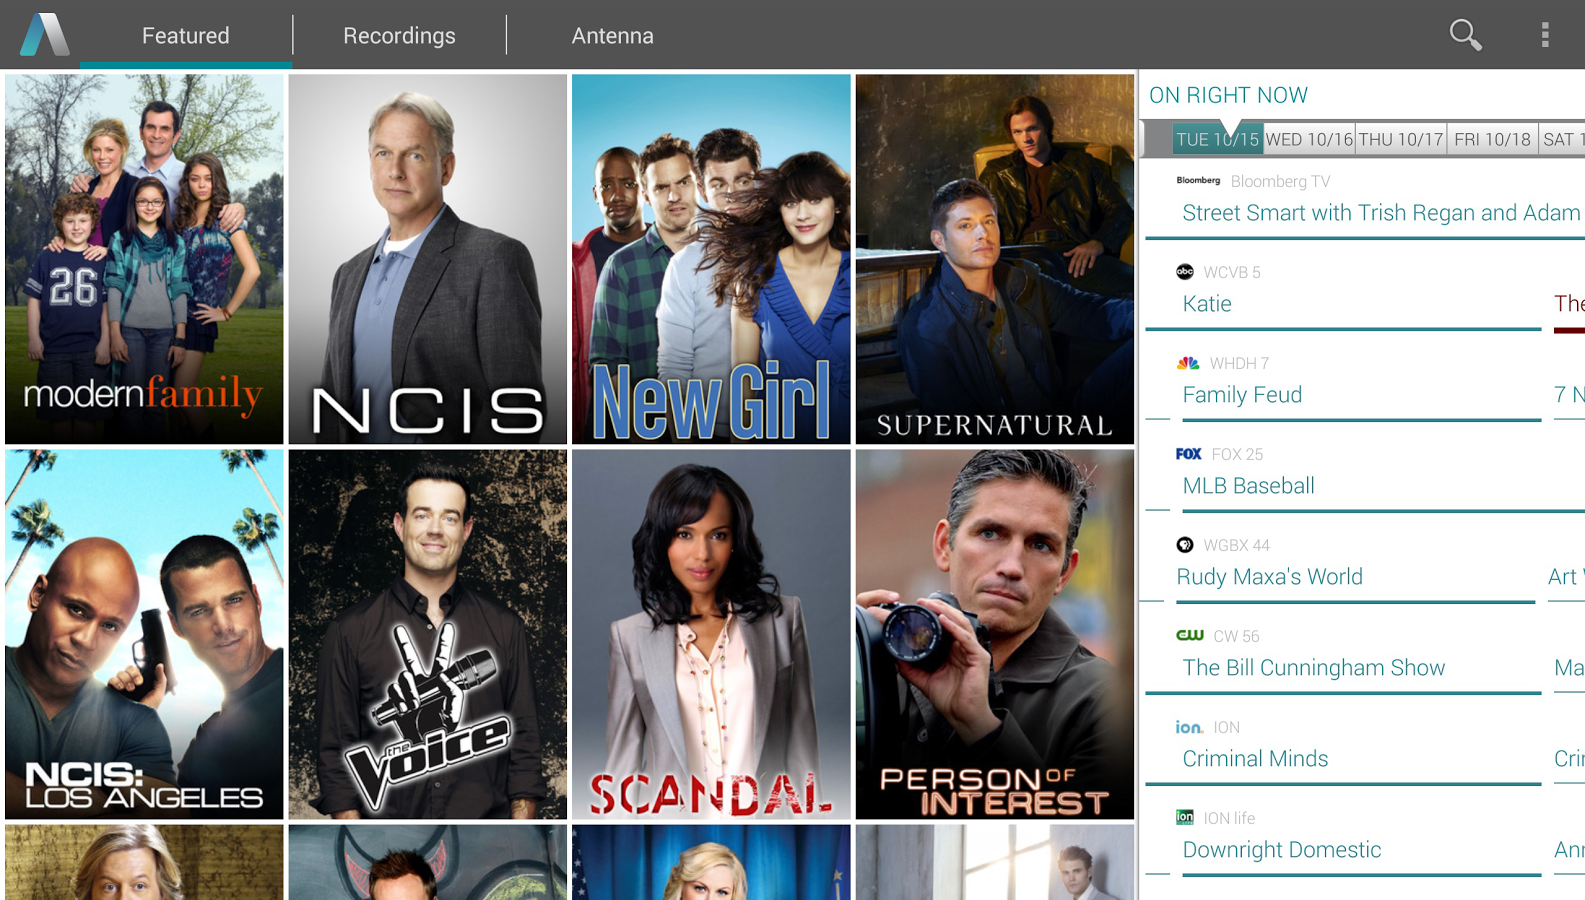 New App] Aereo Streaming TV And DVR Service Is Now Available On